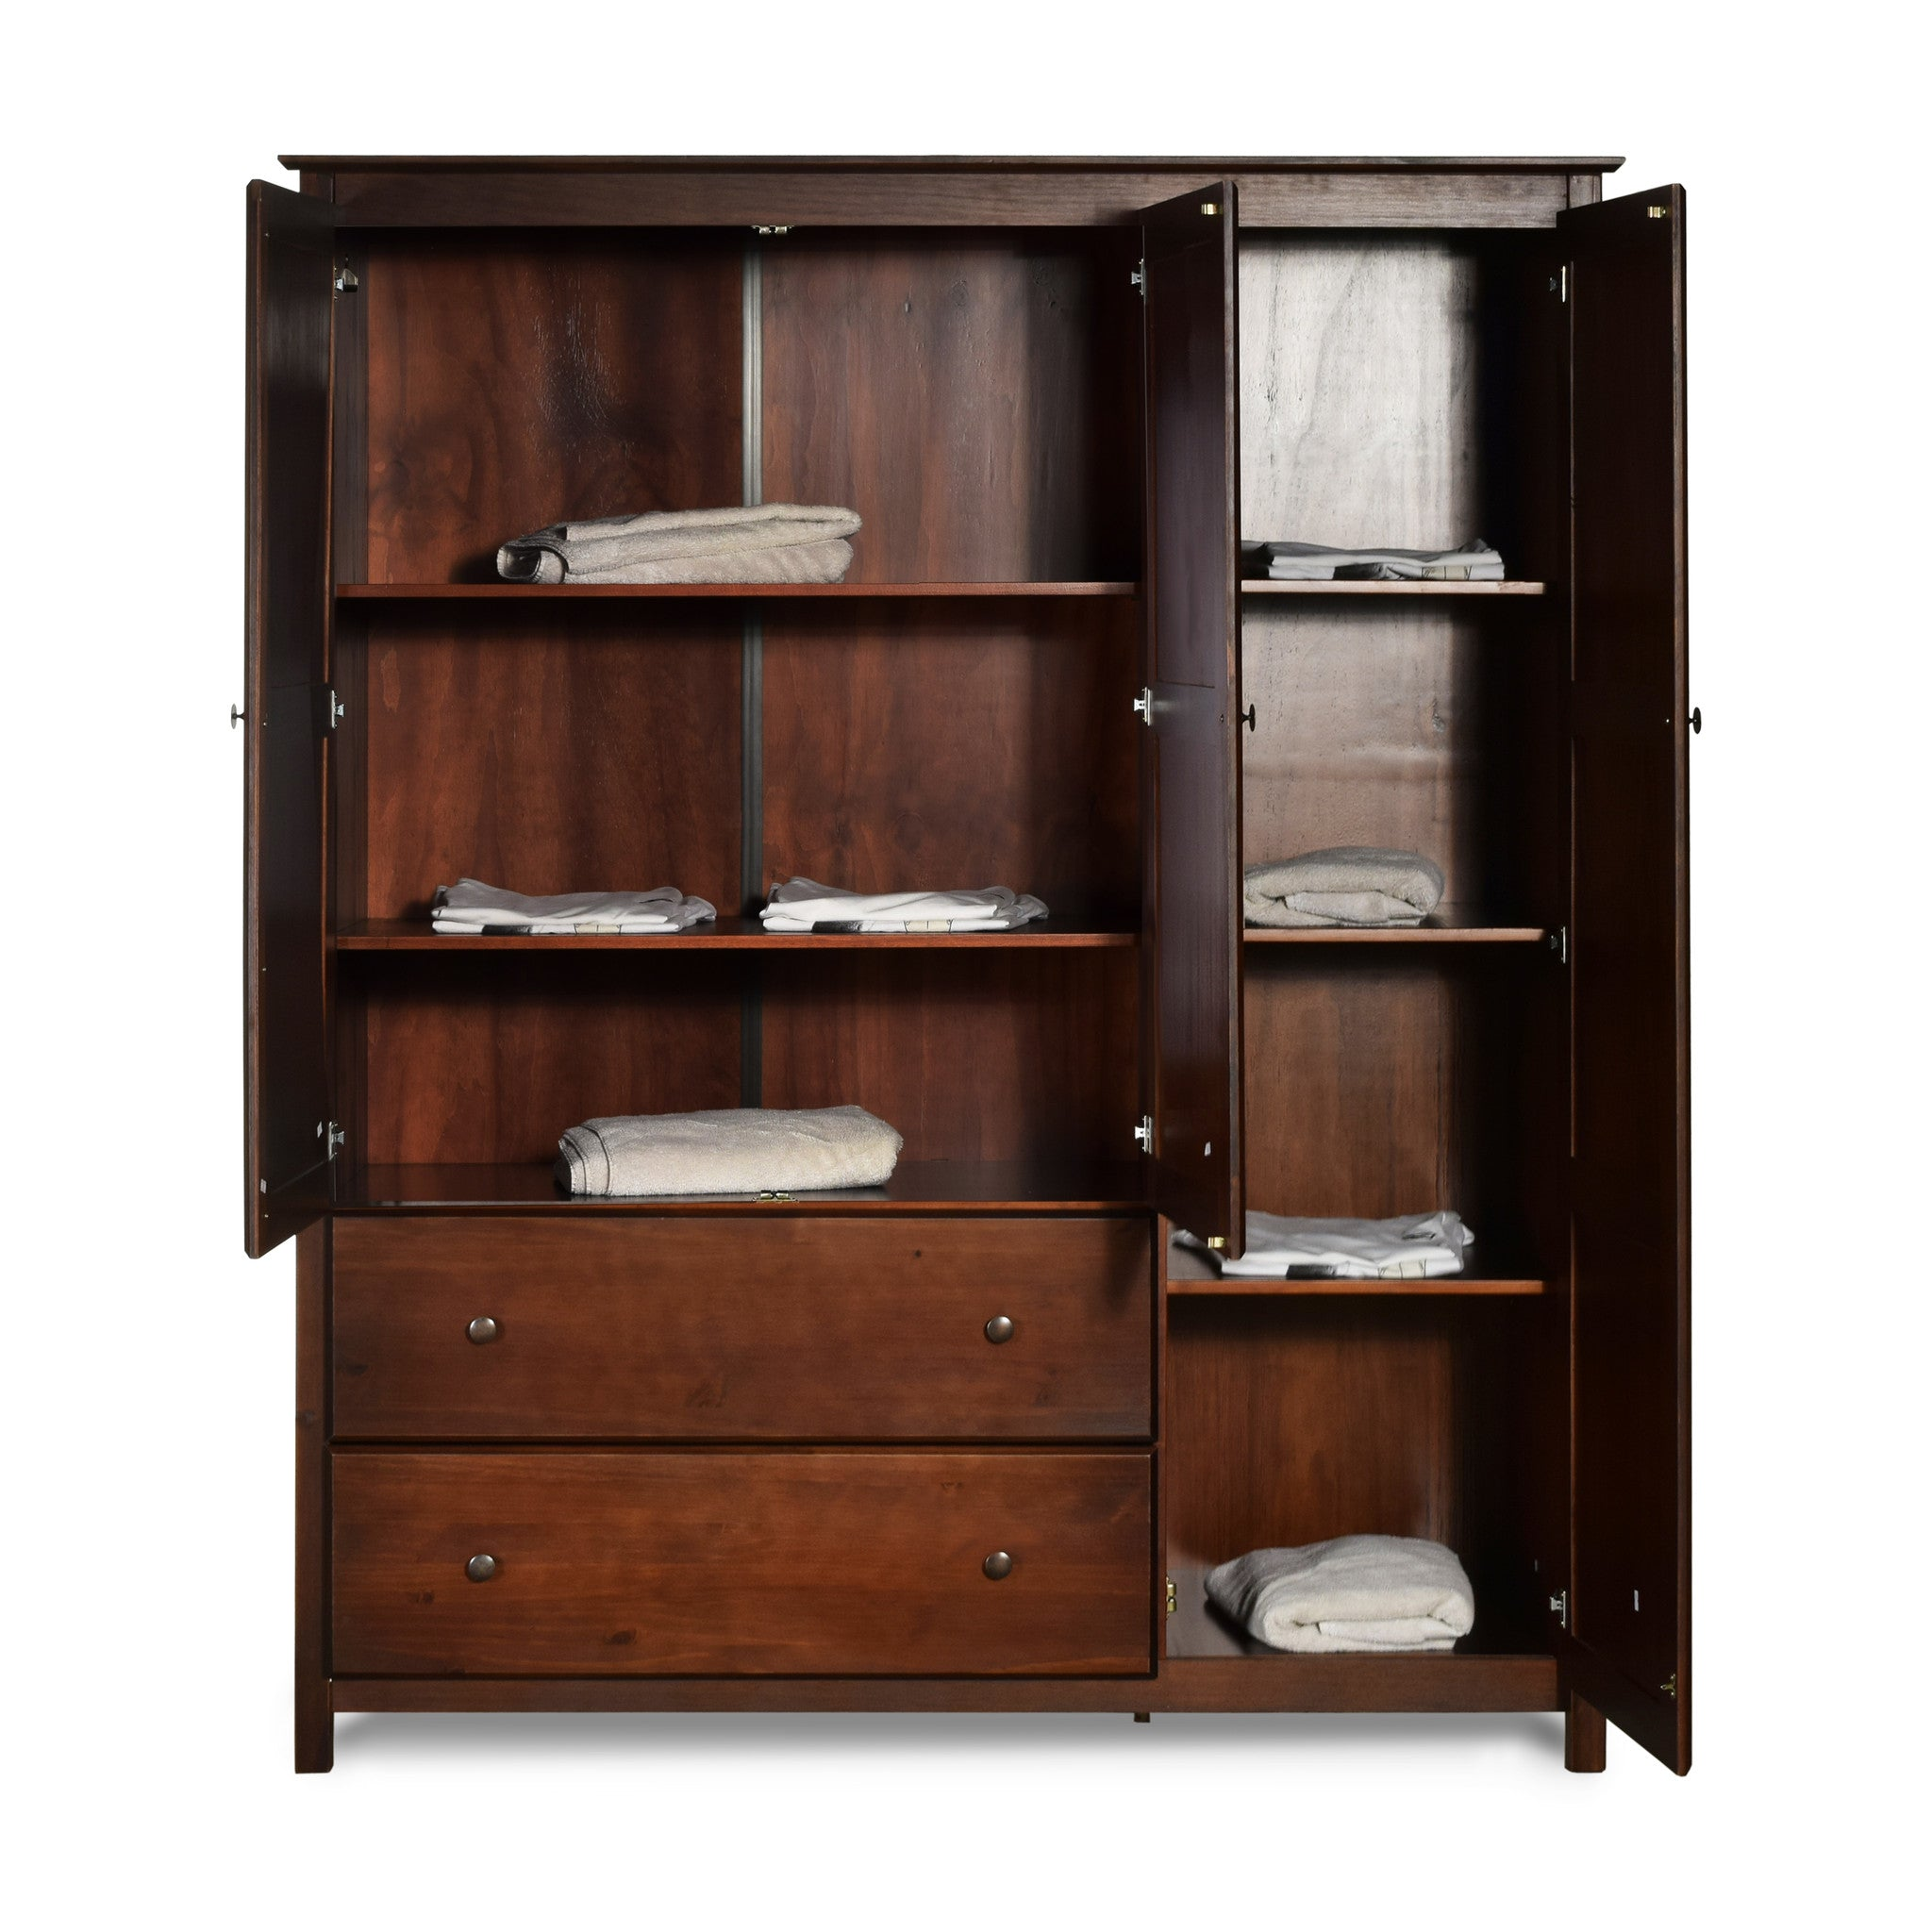 Shaker Optional Wardrobe Shelf -  - Grain Wood Furniture - 3